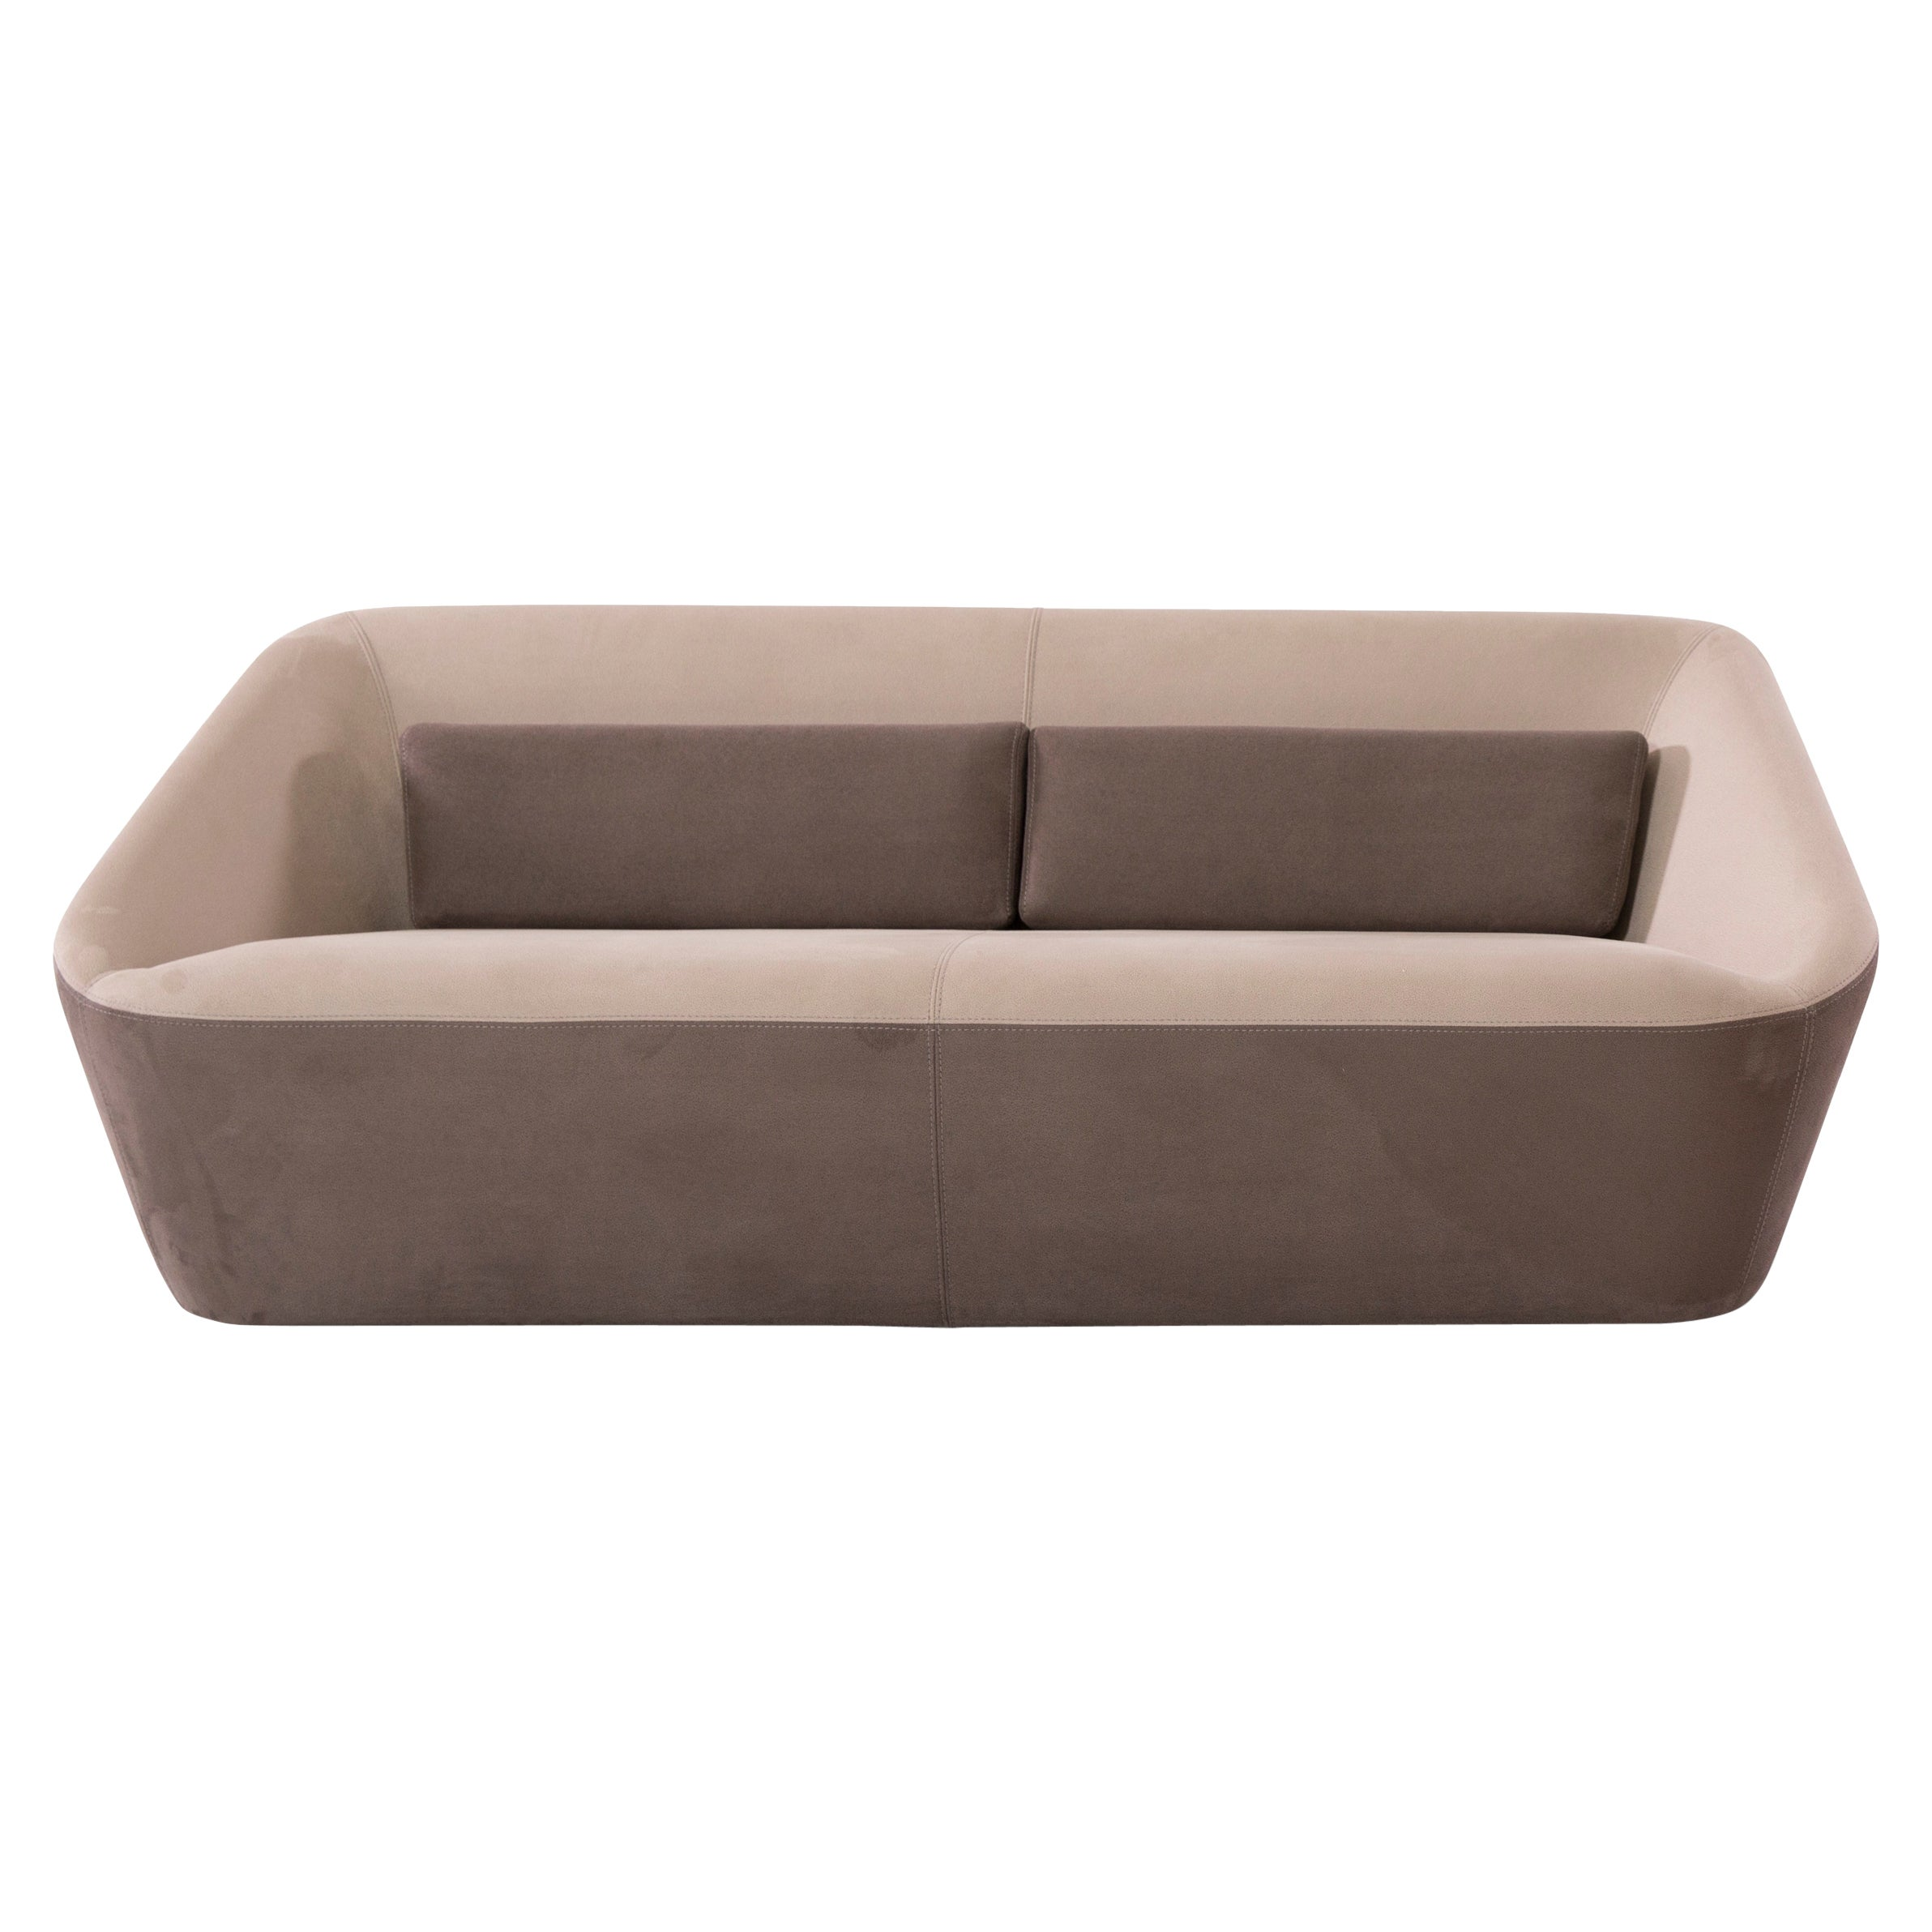 Prince Spencer Sofa V1 '2-Seater' with Two-Tone (Tan-Brown) Fabric Upholstery